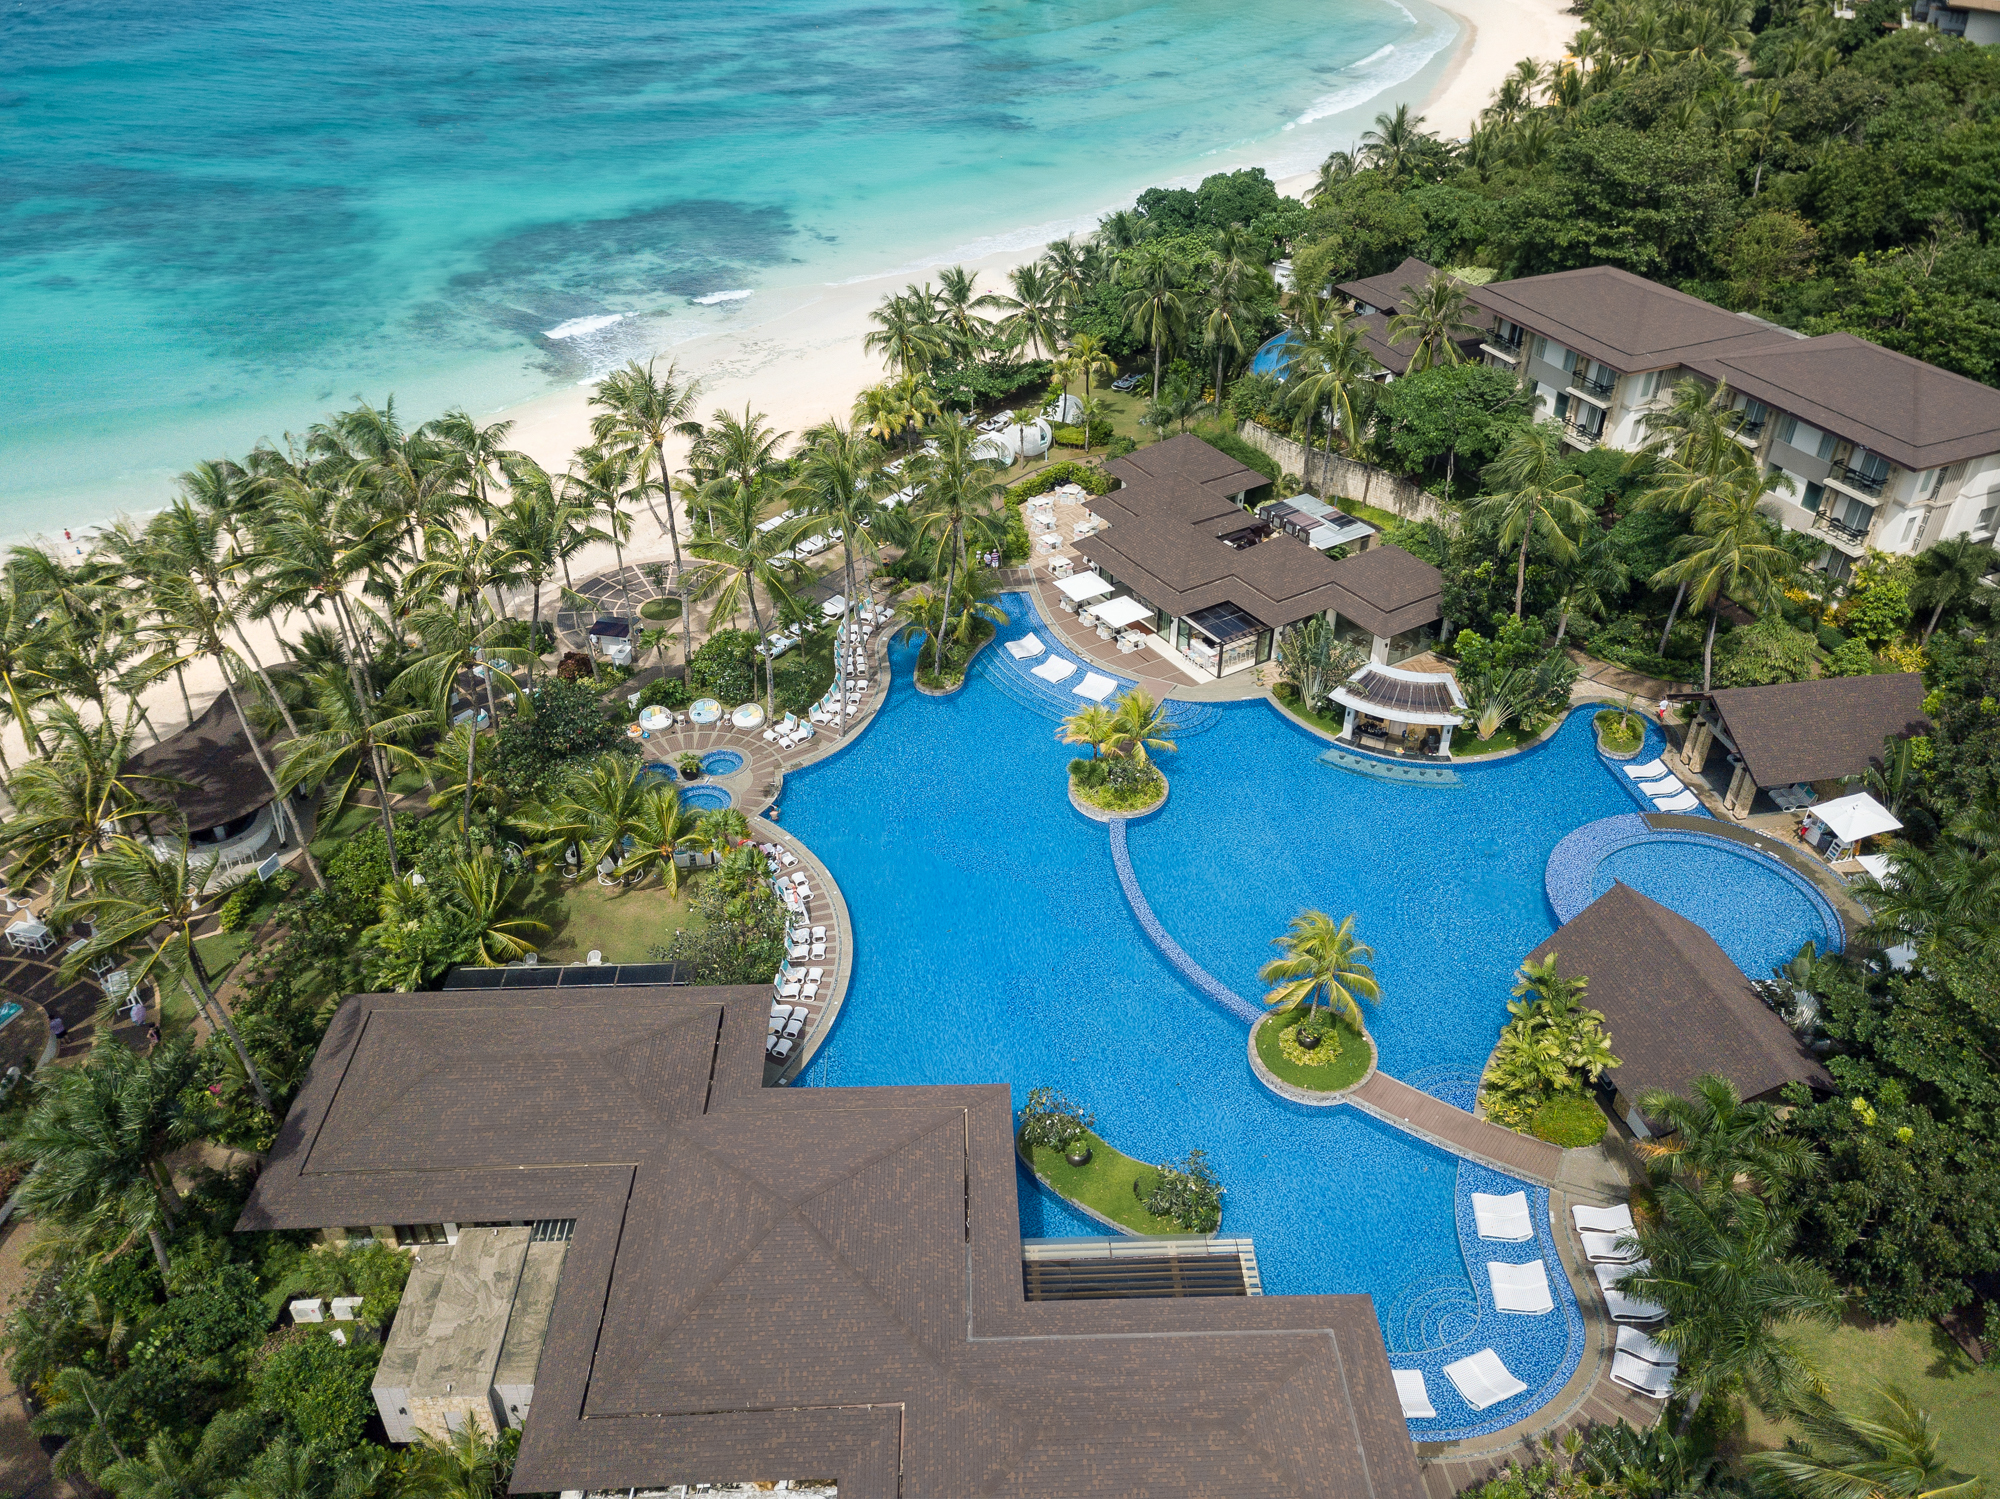 Package Deal to Boracay with Movenpick Resort and Spa & Philippine Airlines for 4 Days & 3 Nights - day 1